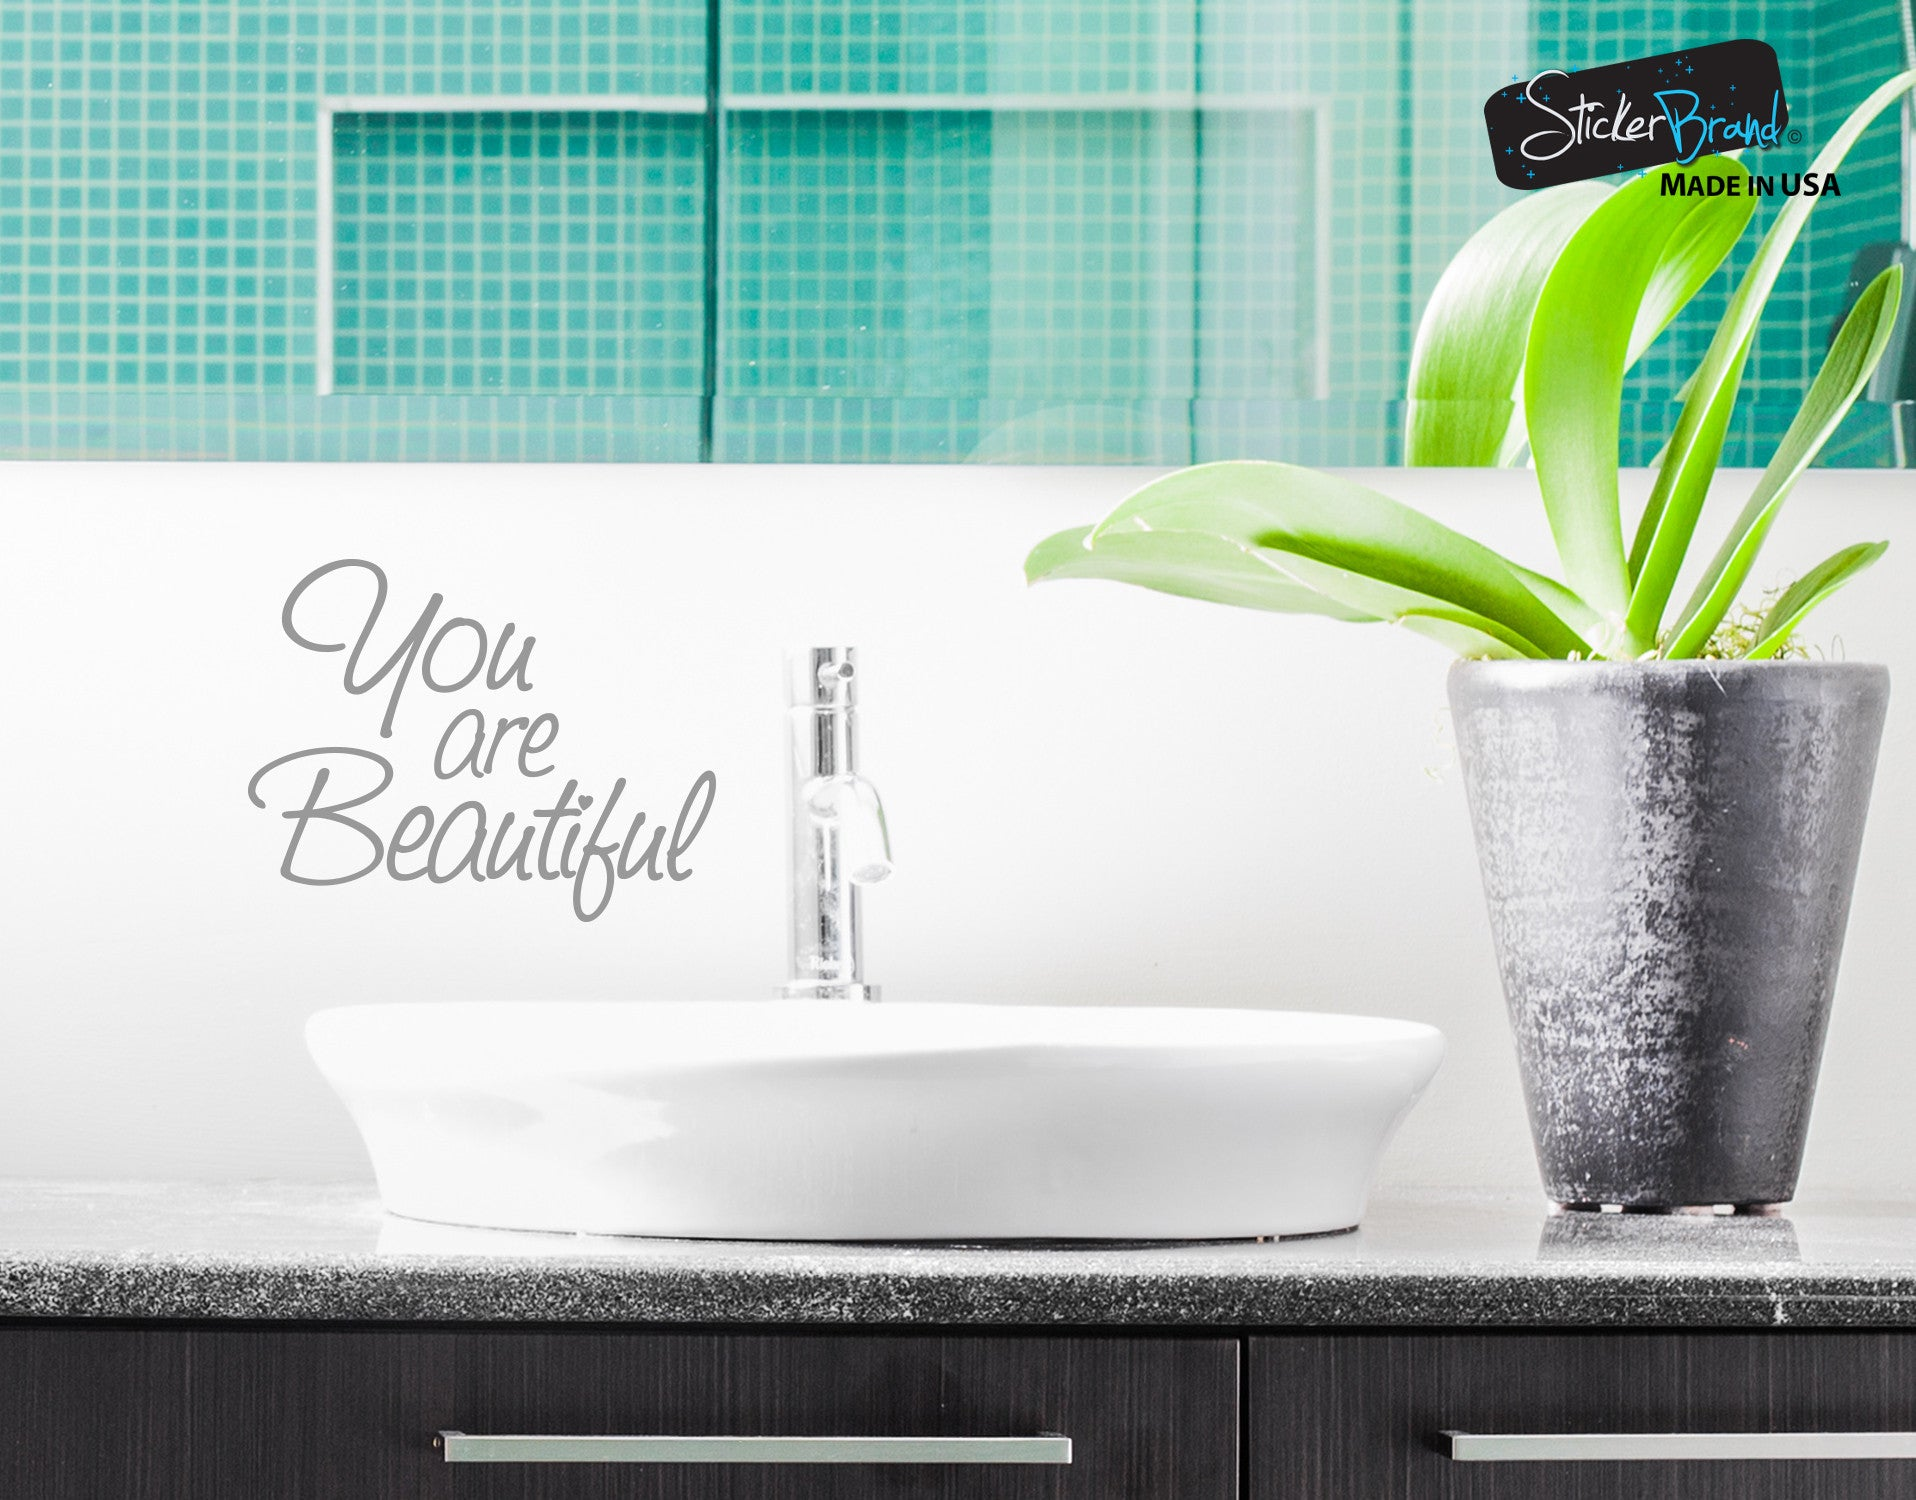 You Are Beautiful Vinyl Decal Sticker For Mirrors Or Walls. Boost Your  Self Esteem With Positive Thinking #6083